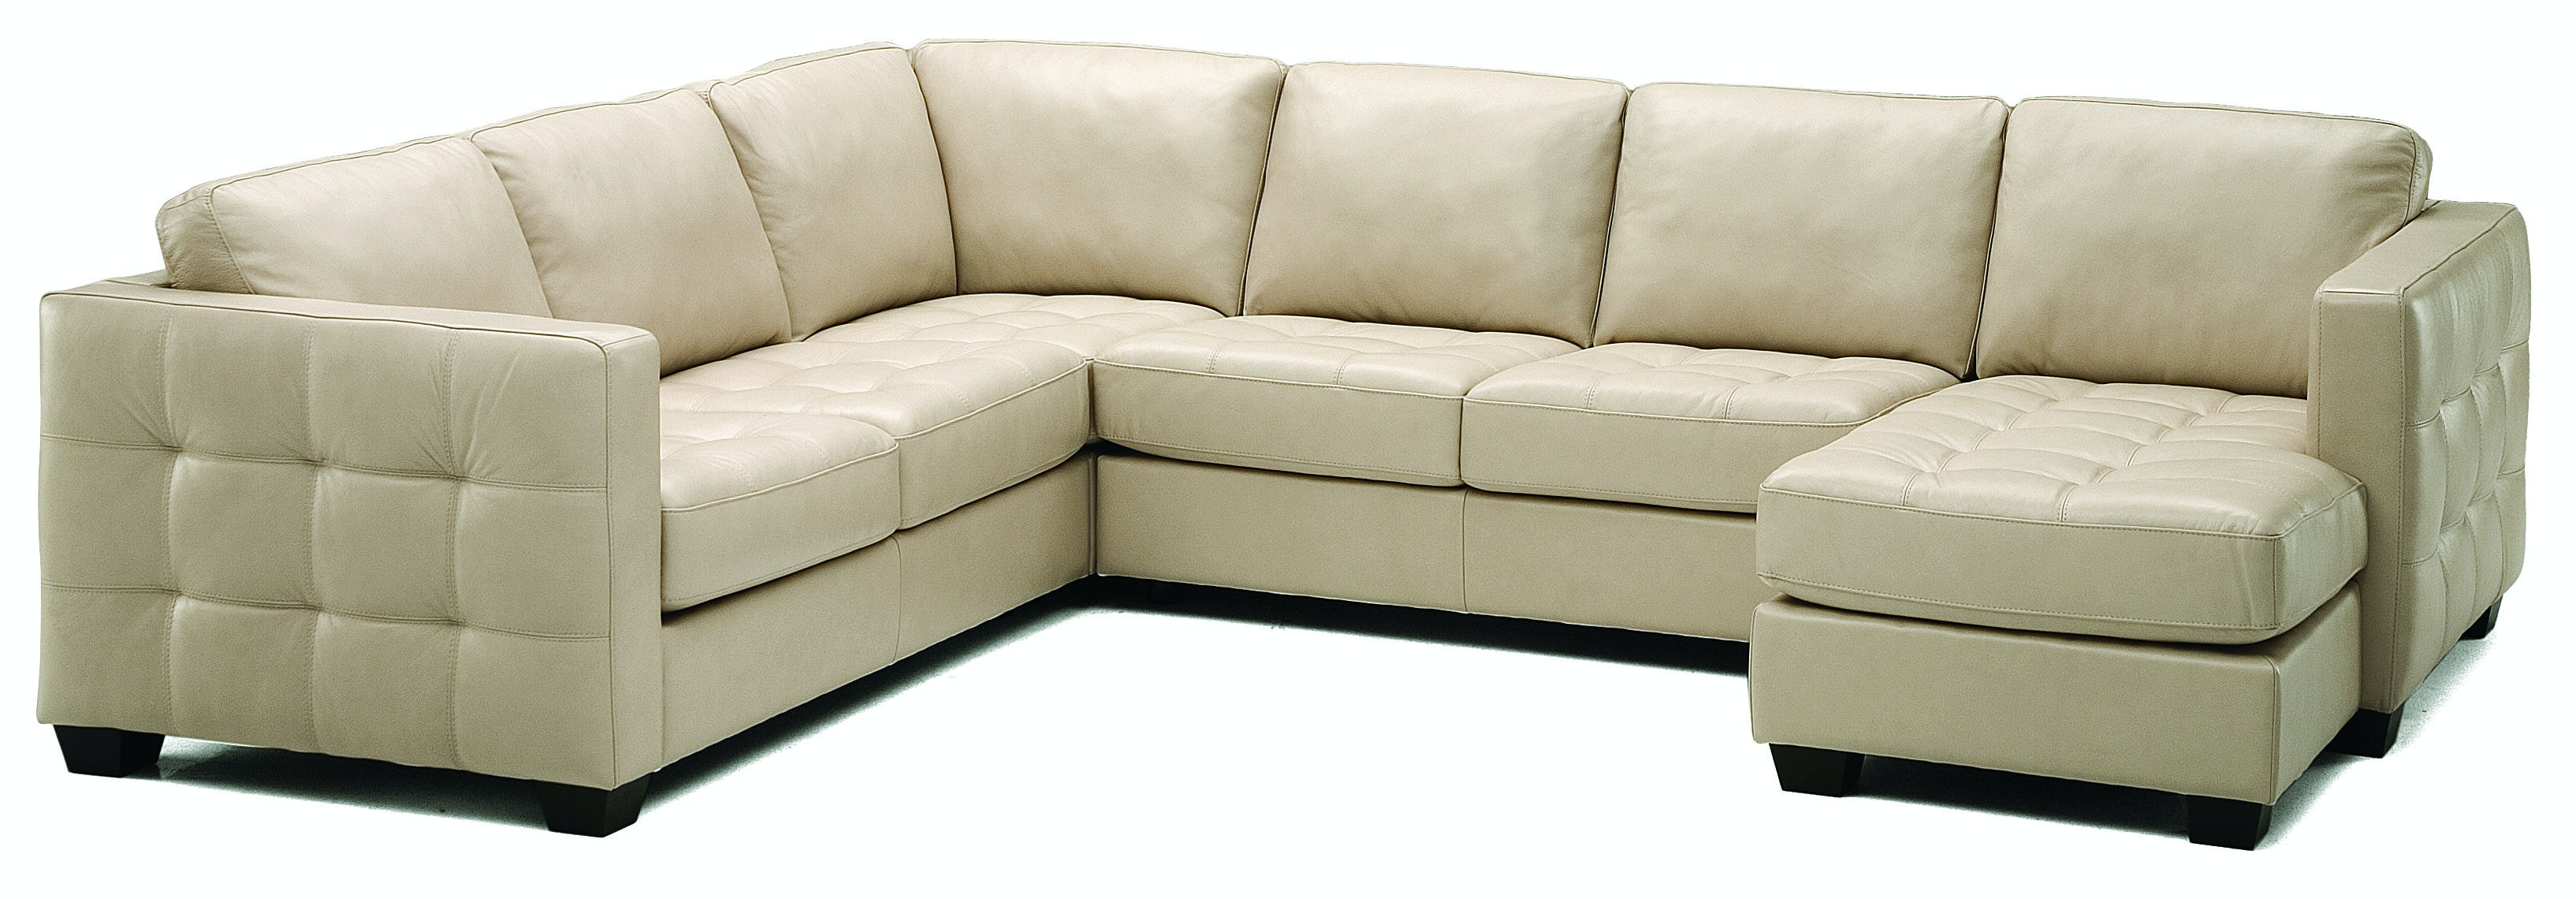 Attractive 77558 Sectional